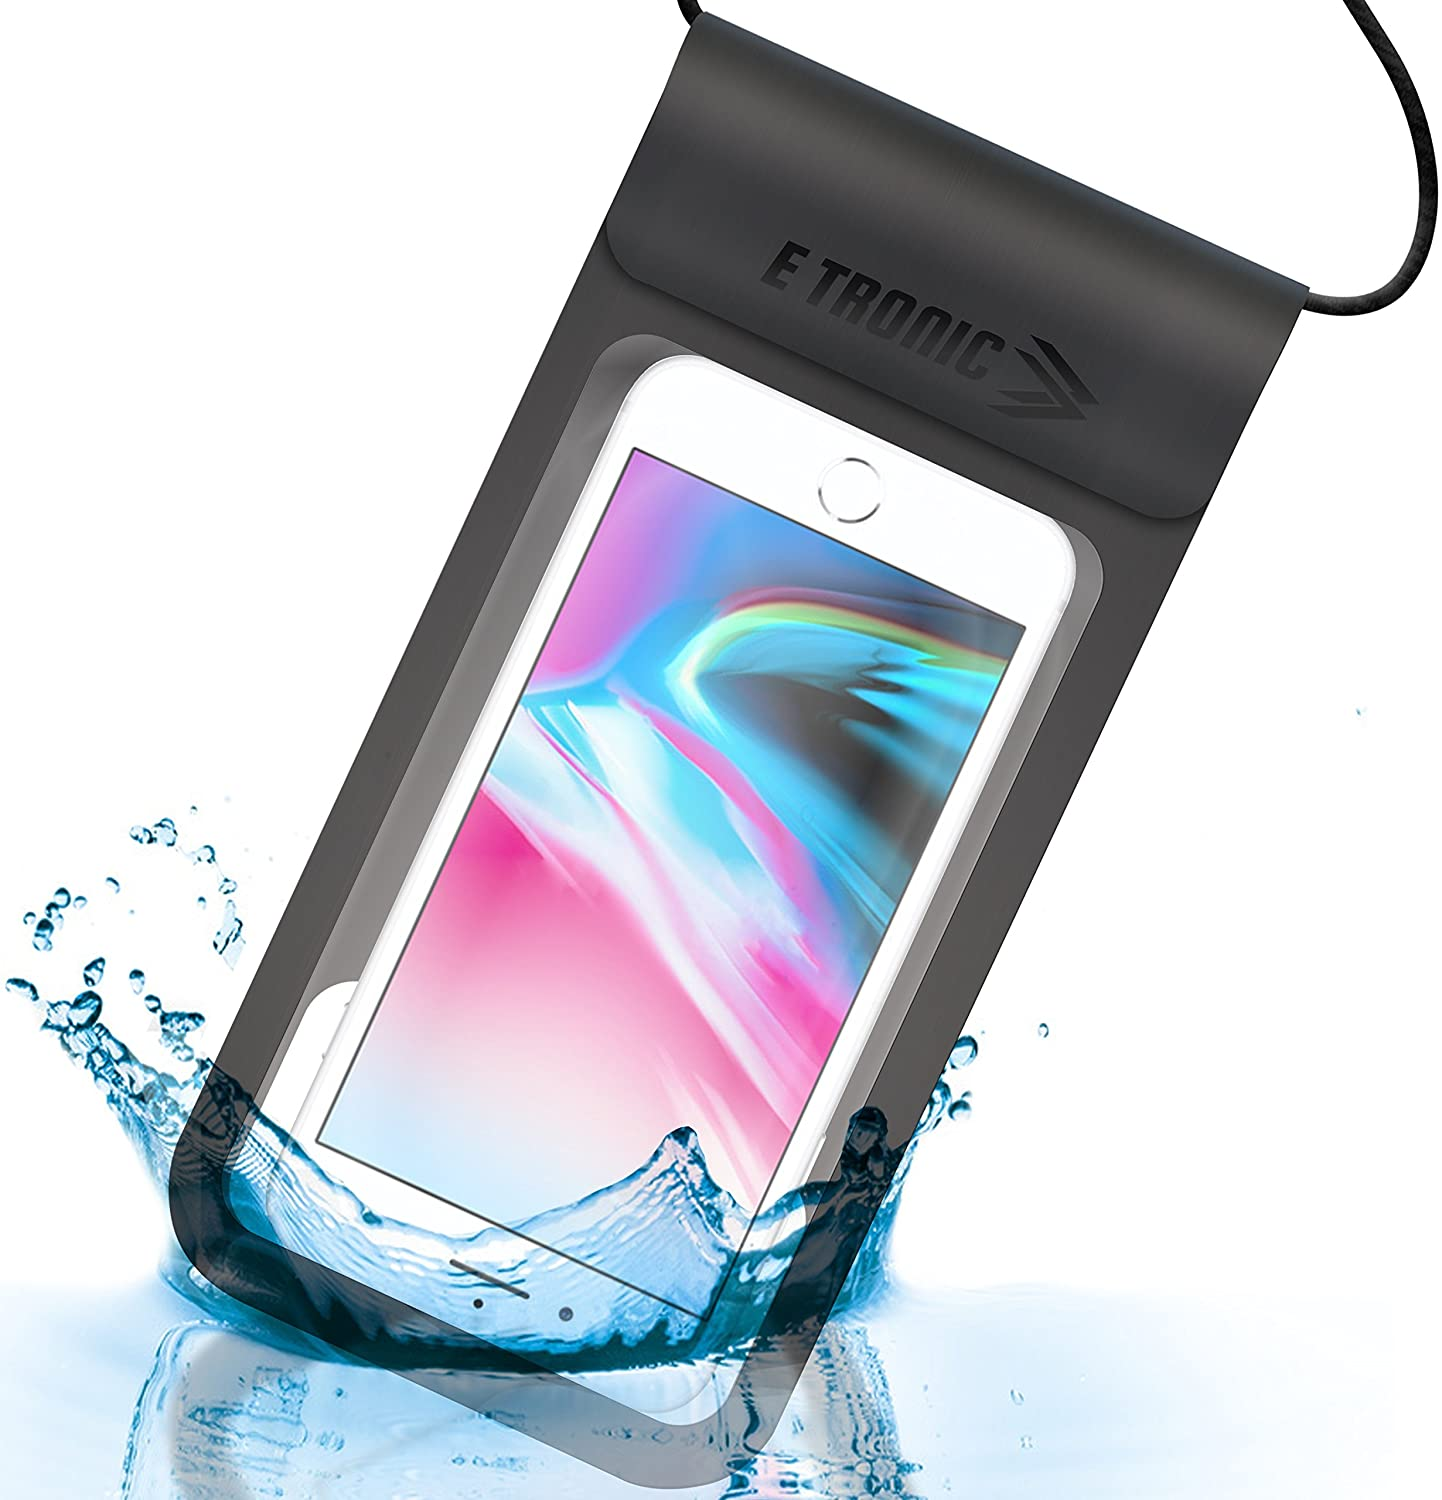 official photos 4b4a0 13b45 Waterproof Phone Case: Best UNIVERSAL Cellphone Dry Bag Water Proof Pouch.  Clear Cover Underwater Cases Holder Bags for All Cell Phones. iPhone Plus X  ...